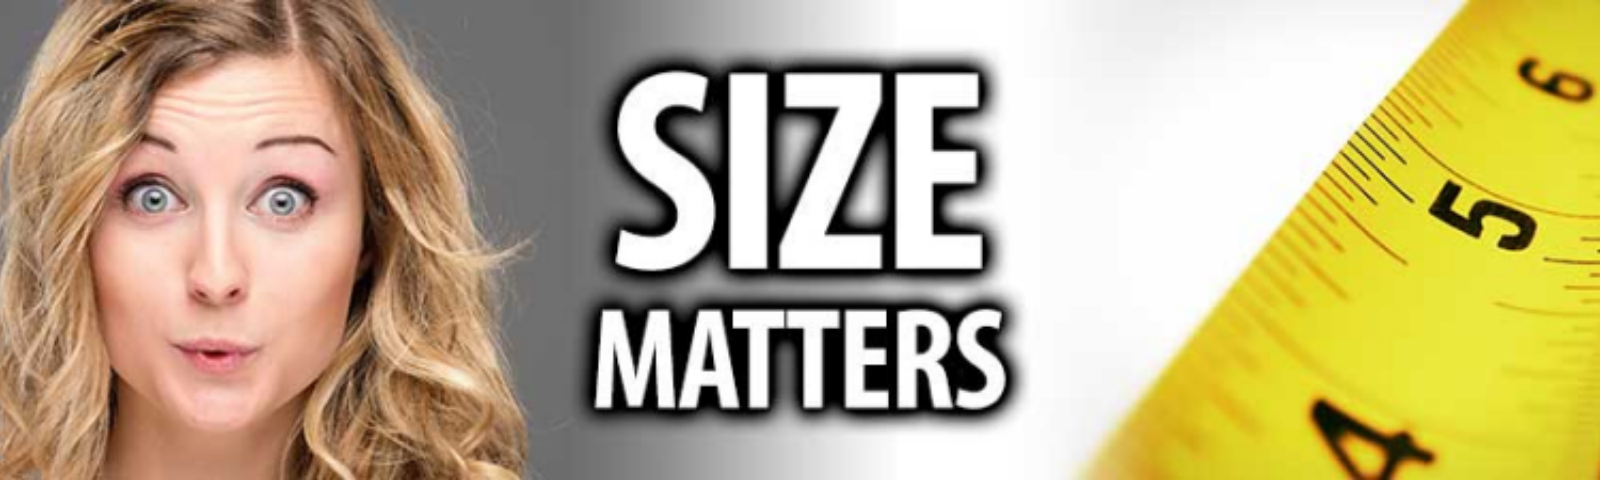 Does size of a penis matter